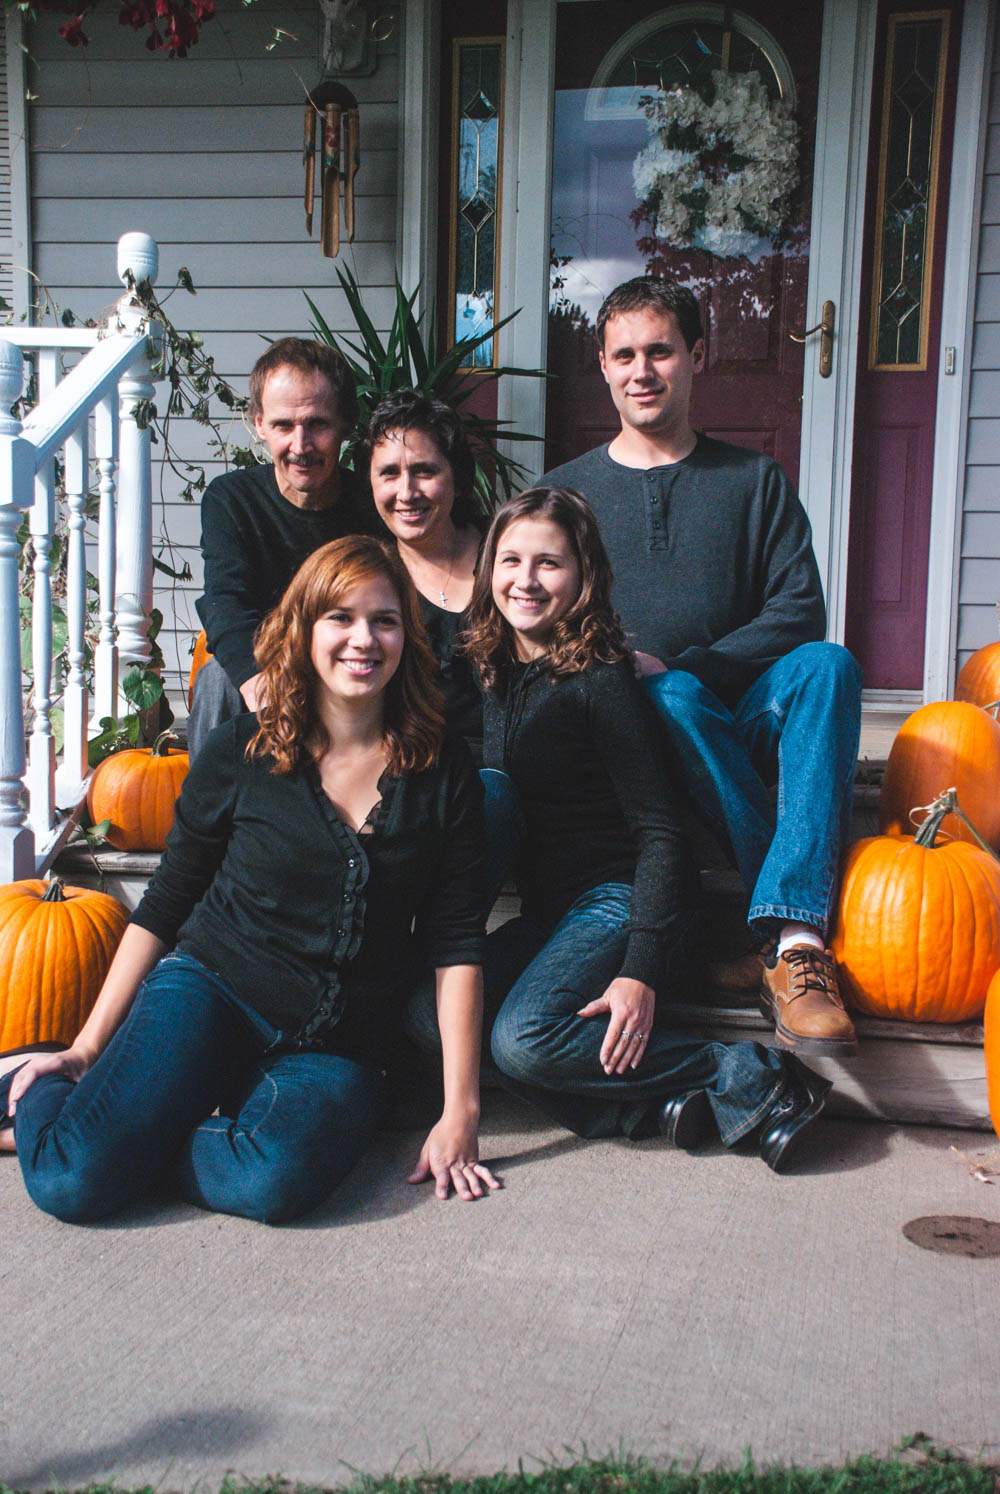 Central Wisconsin family portraits at home